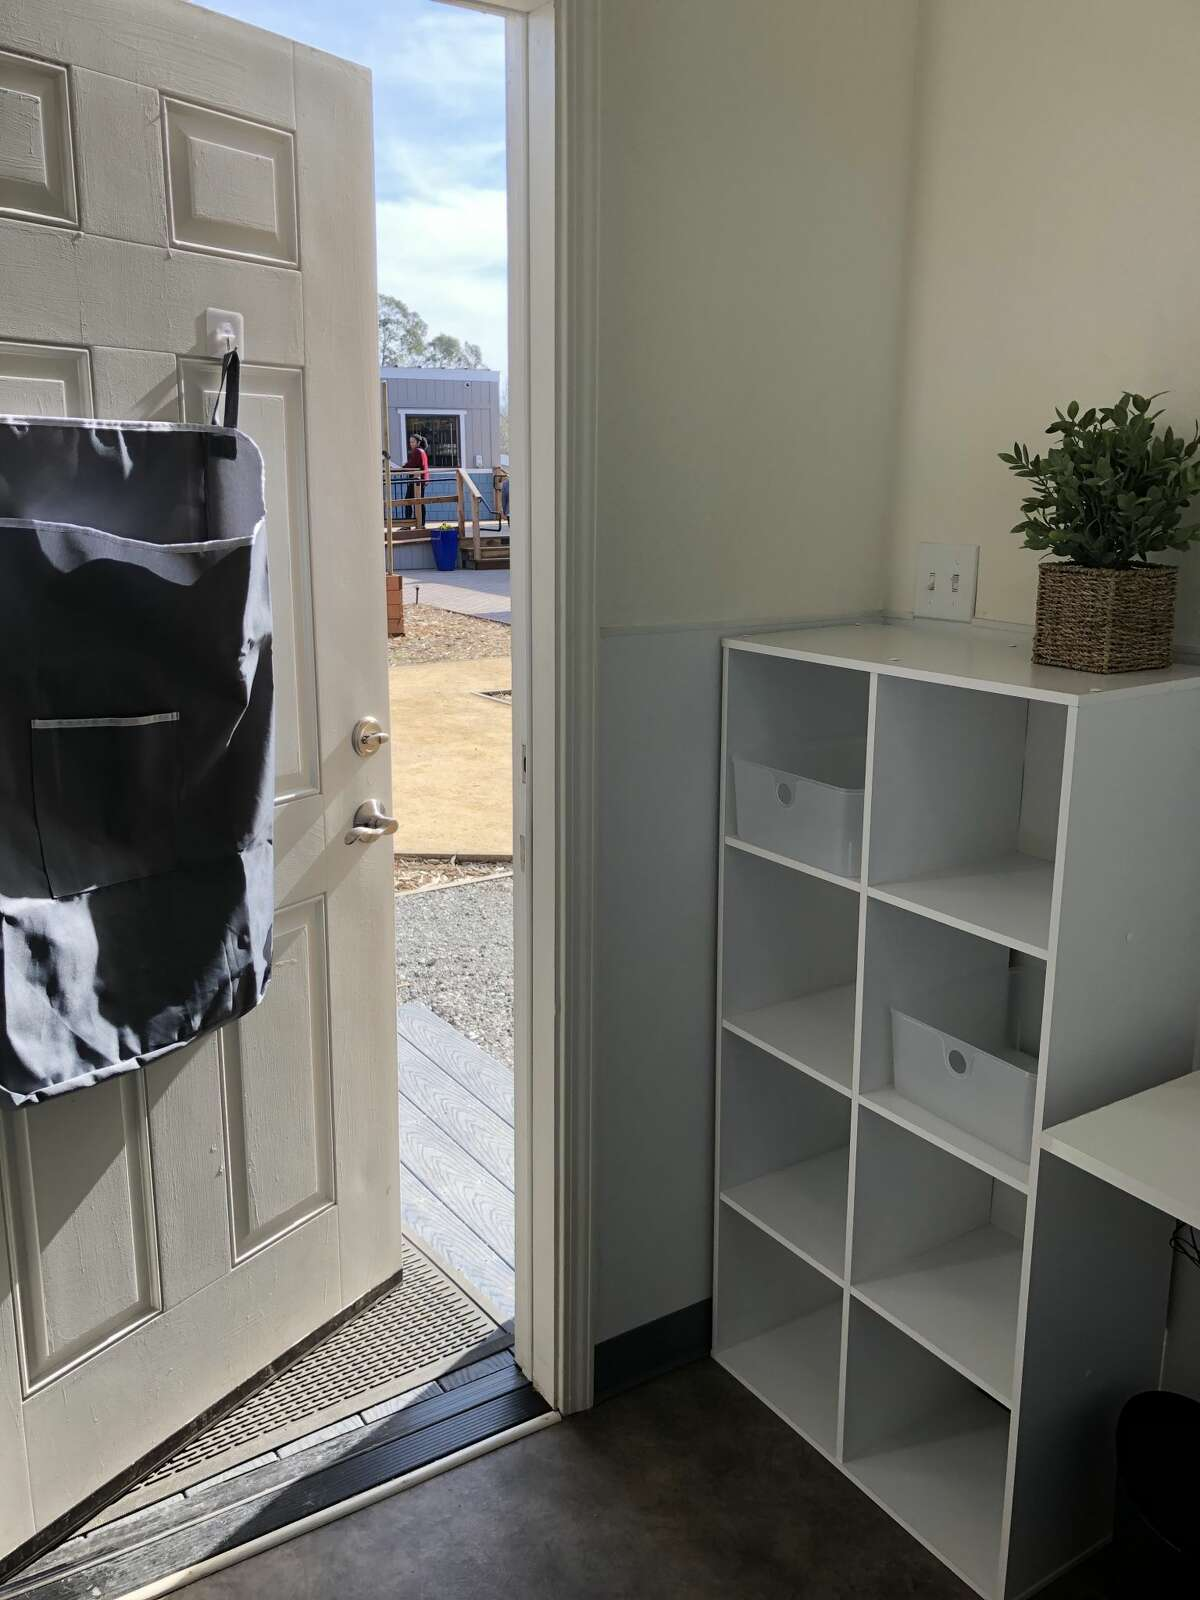 The model tiny home shown also has a shelving unit and small desk. The Bridge Housing Community in San Jose will provide temporary housing for 40 individuals.